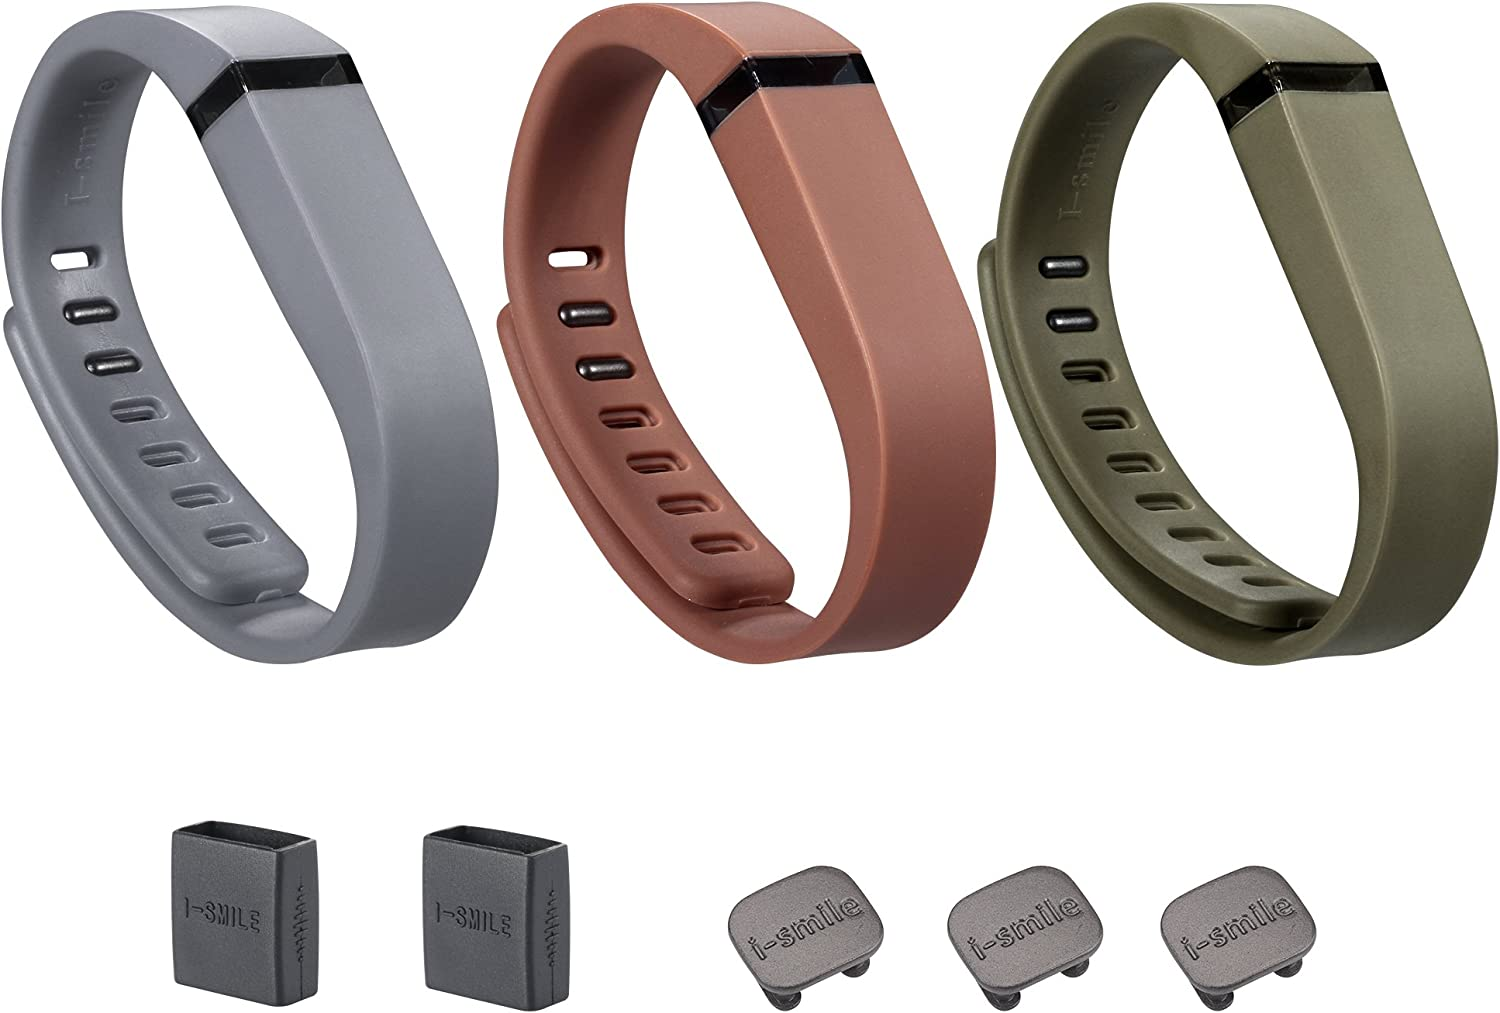 Set of 3 with 2 Piece Silicon Fastener Ring I-SMILE 3PCS Replacement Bands with Metal Clasps for Fitbit Flex